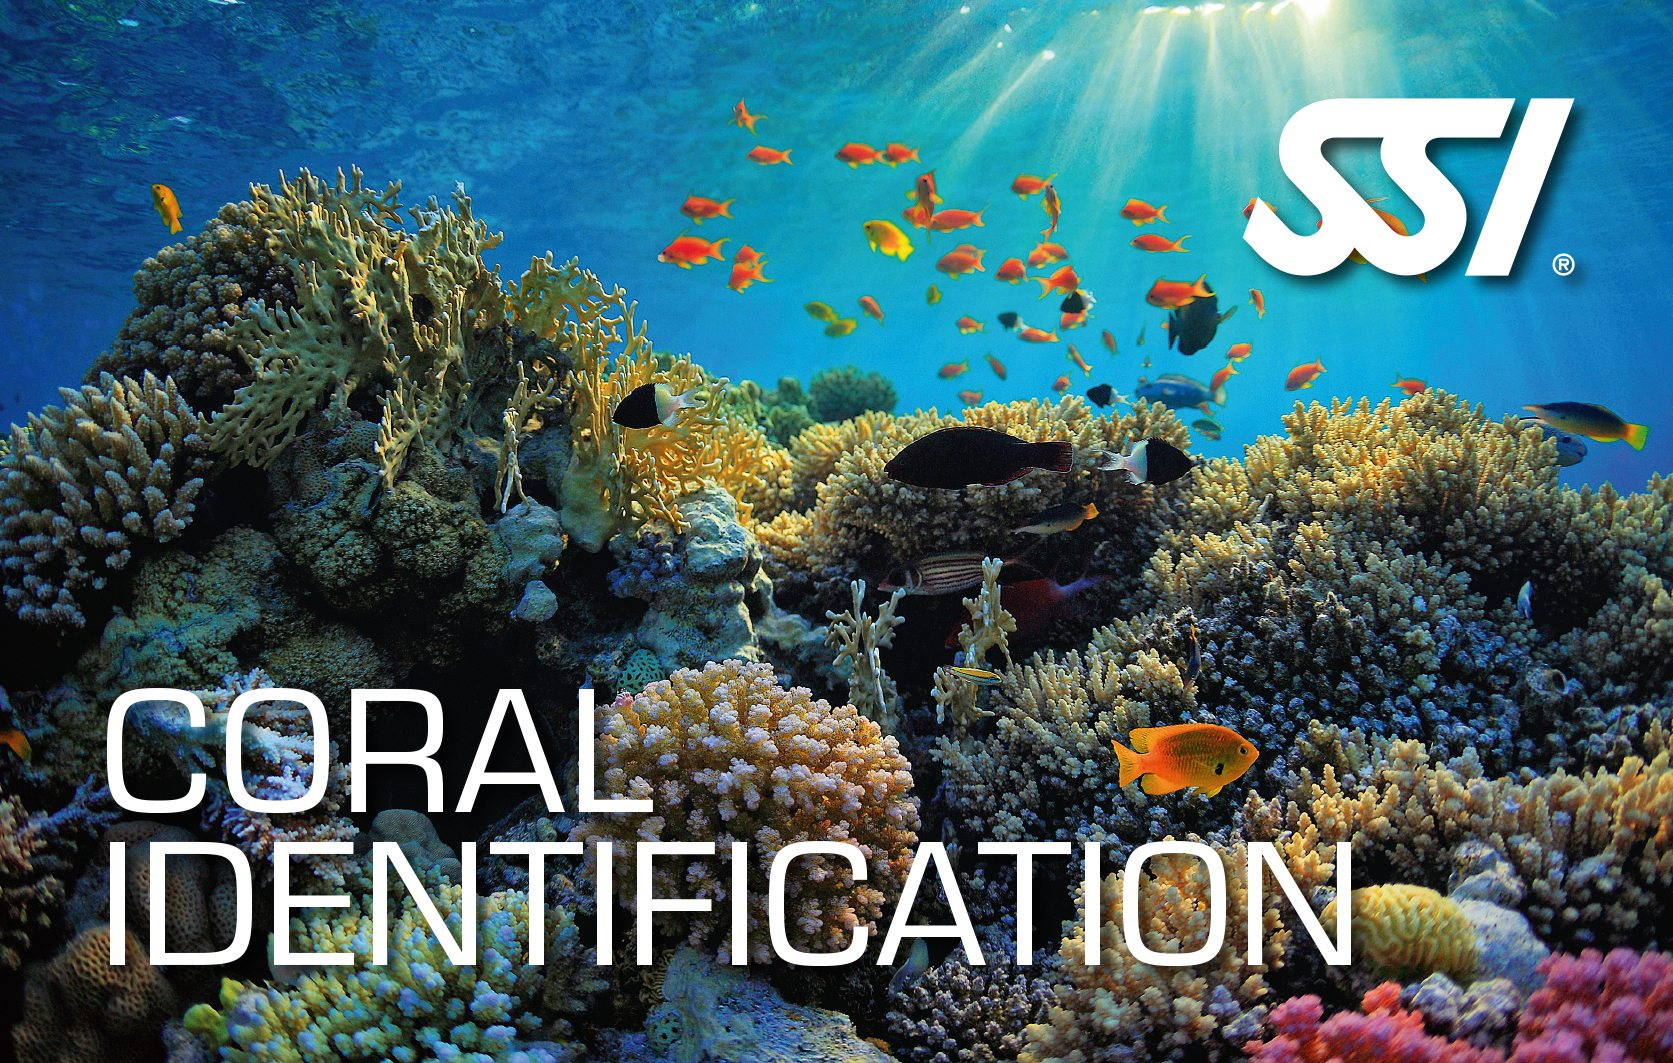 SSI Coral Identification | SSI Coral Identification Course Course Course | Coral Identification | Specialty Course | Diving Course